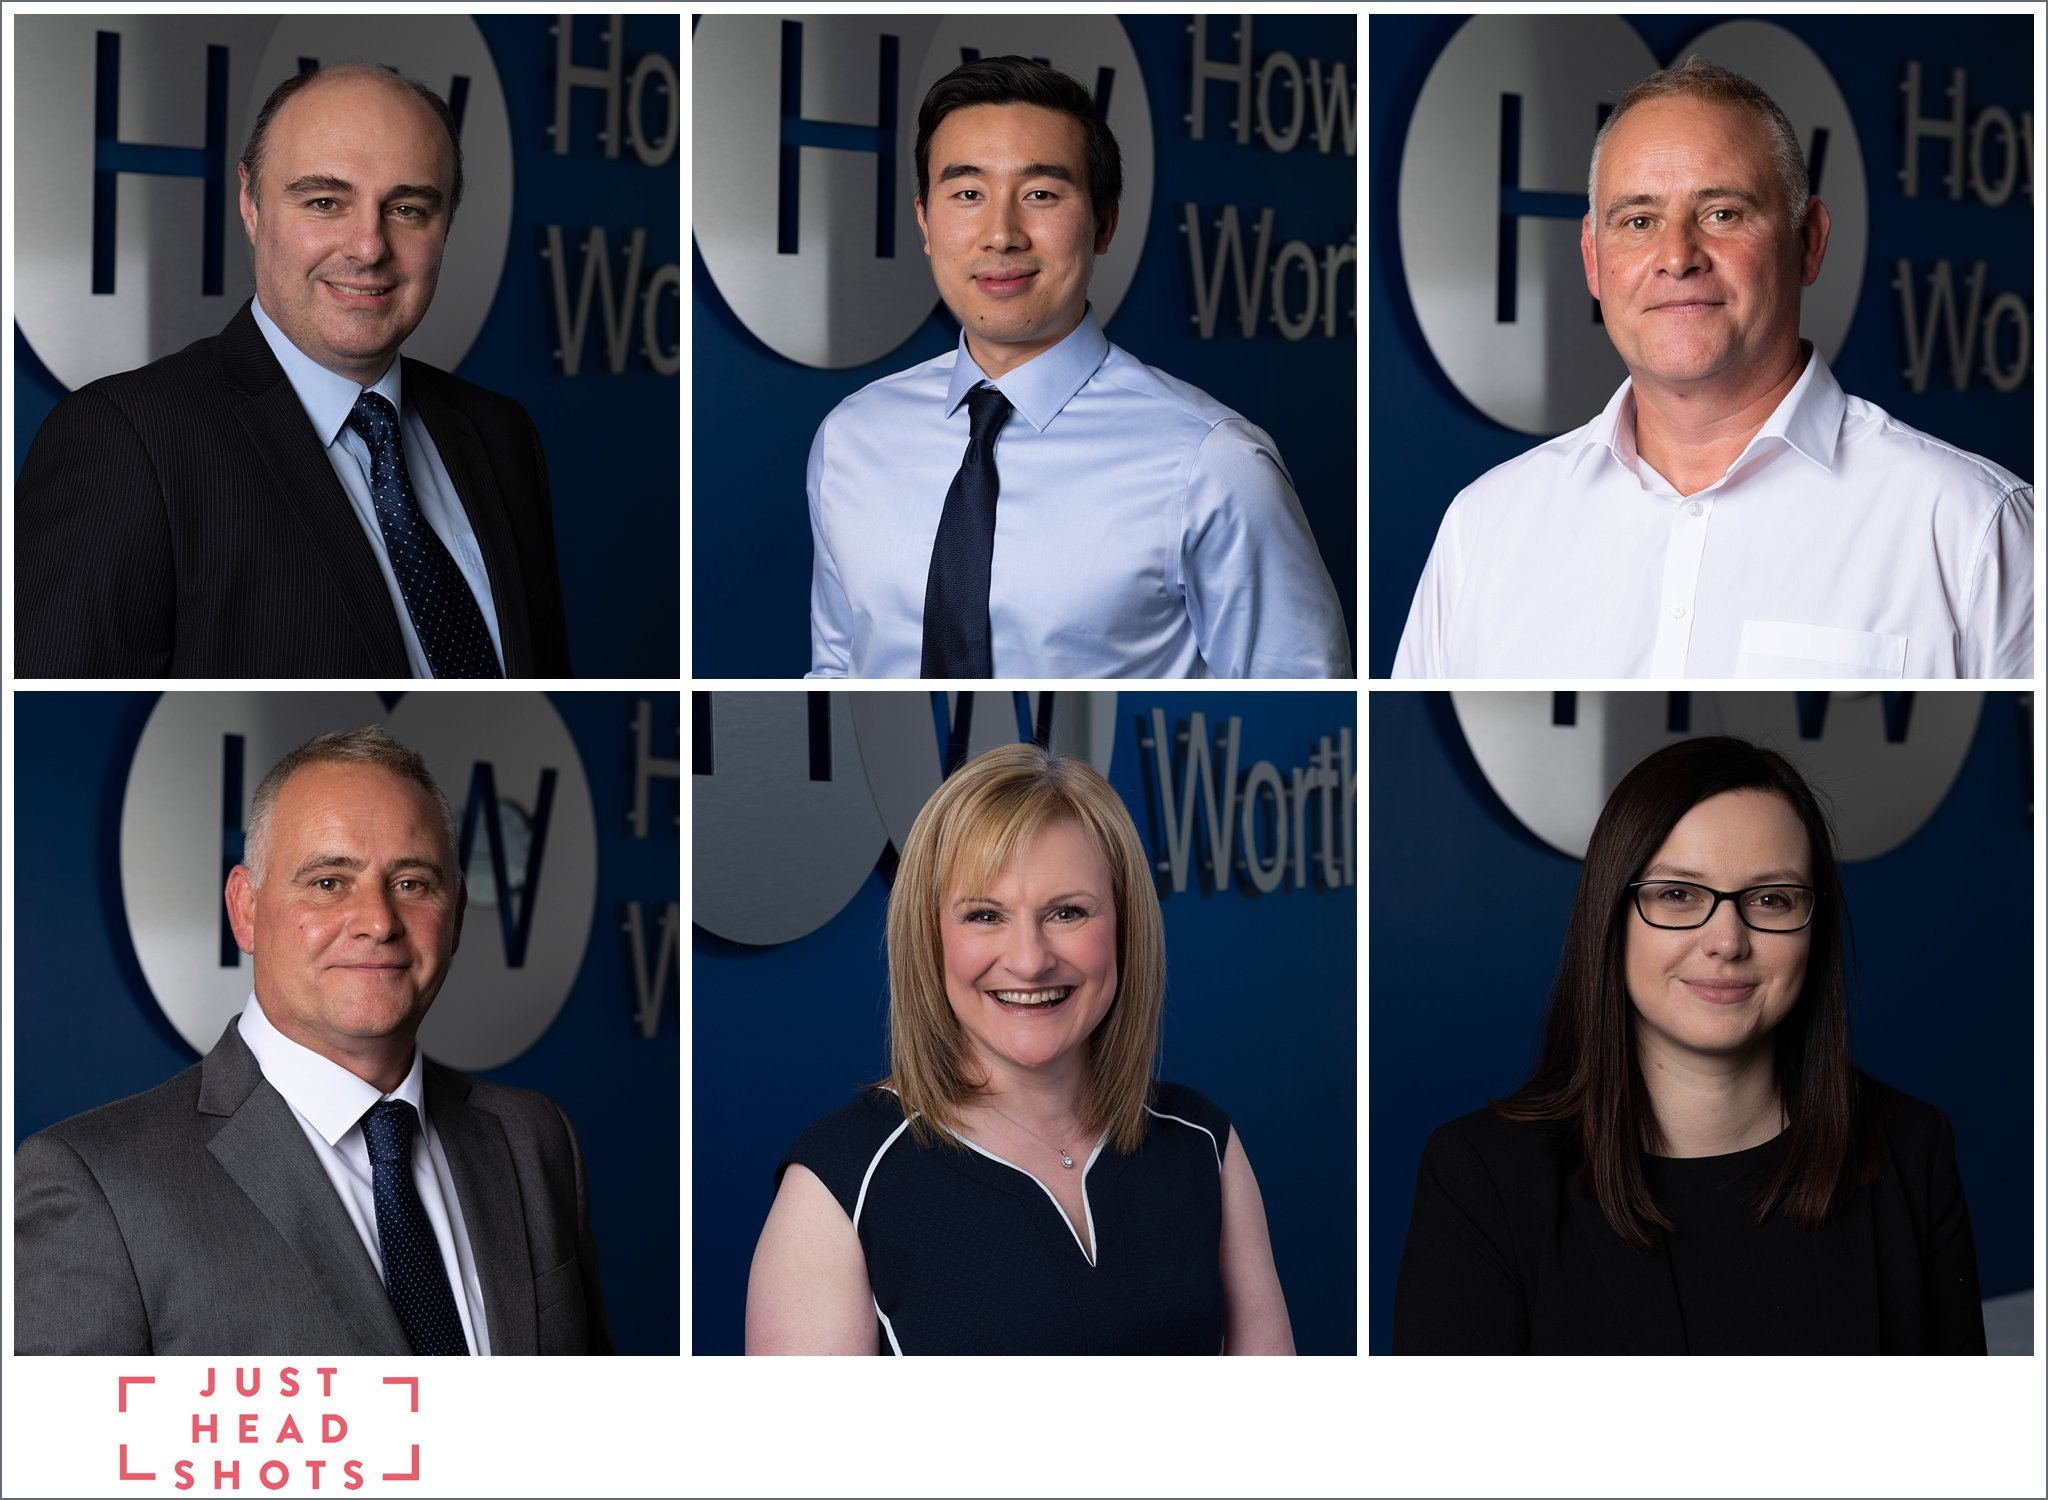 corporate headshot photos of accountants in Northwich with company logo and dark blue background